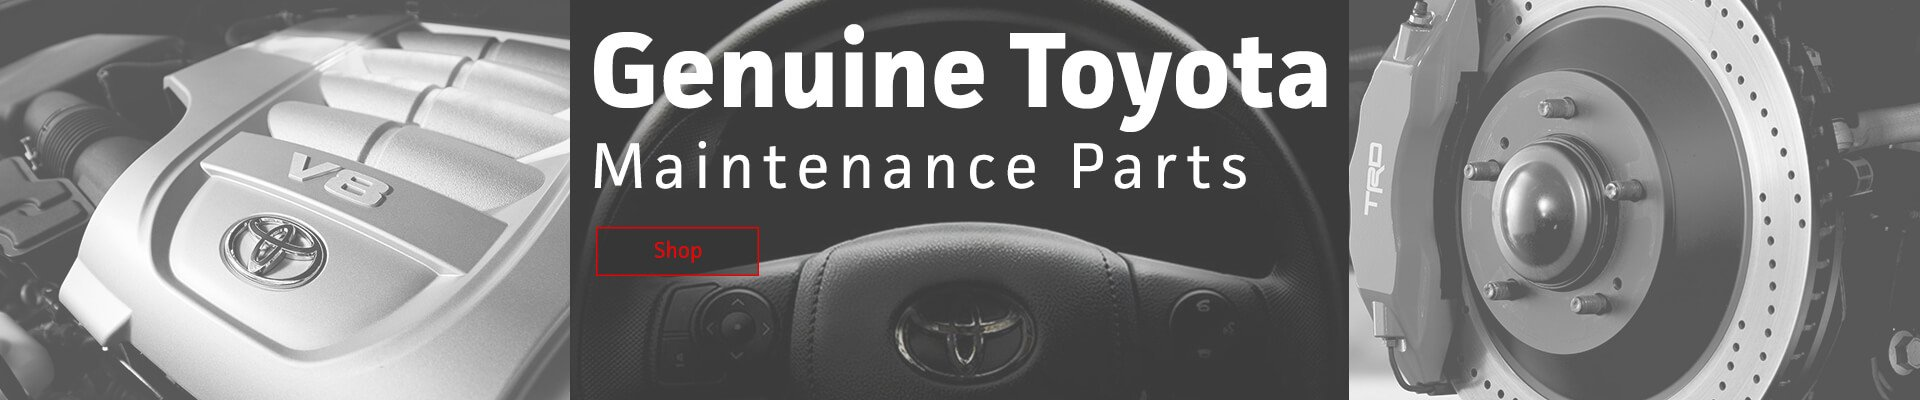 Genuine Toyota Maintenance Parts